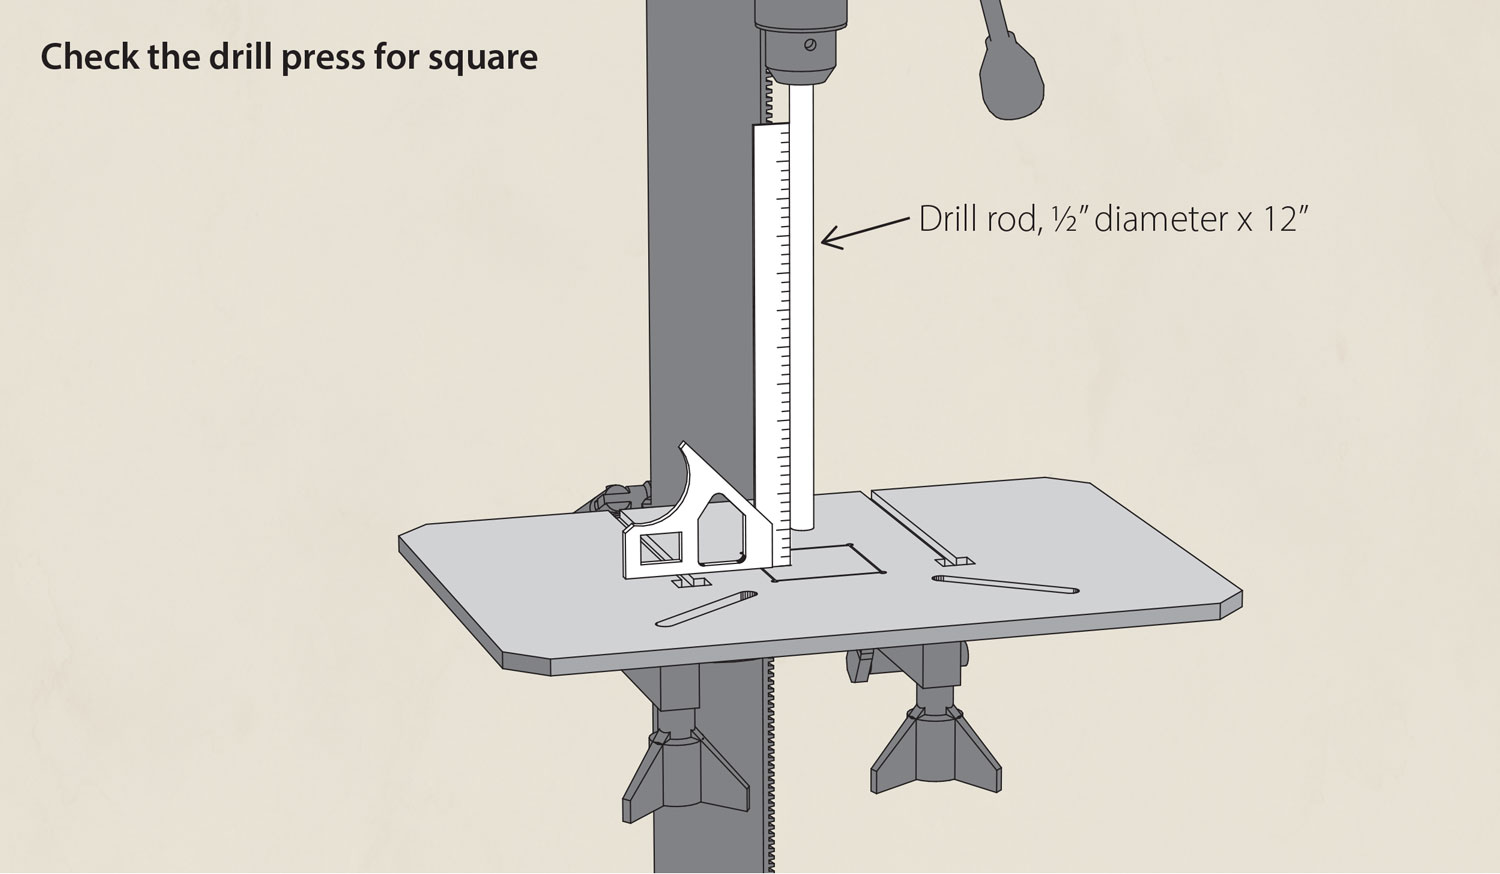 Check the drill press for square